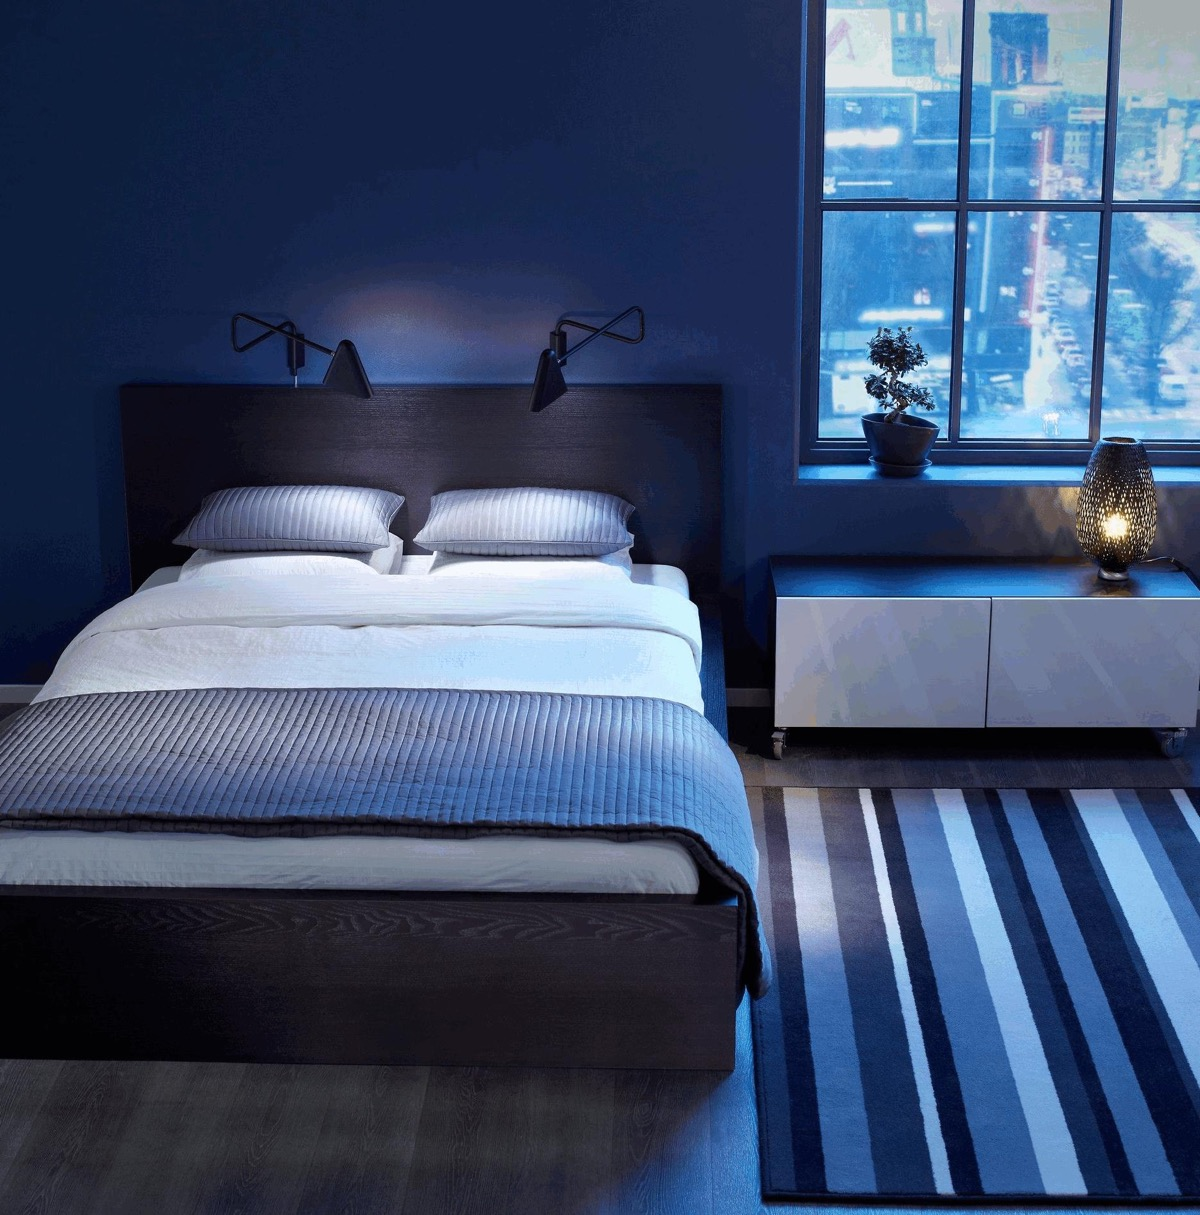 30 Buoyant Blue Bedrooms That Add Tranquility and Calm to ... on zen things, zen bathroom design, zen kitchen ideas, bedroom interior design ideas, zen bedroom art, zen bedroom window treatments, bedroom wall ideas, zen bedroom rugs, zen bedroom space, buddhist bedroom ideas, relaxing bedroom ideas, zen bedroom set, zen bedroom design, zen bedroom apartment, couples bedroom ideas, zen bedroom curtains, zen bedroom colors, zen home ideas, zen-inspired bedroom ideas, japanese themed bedroom ideas,